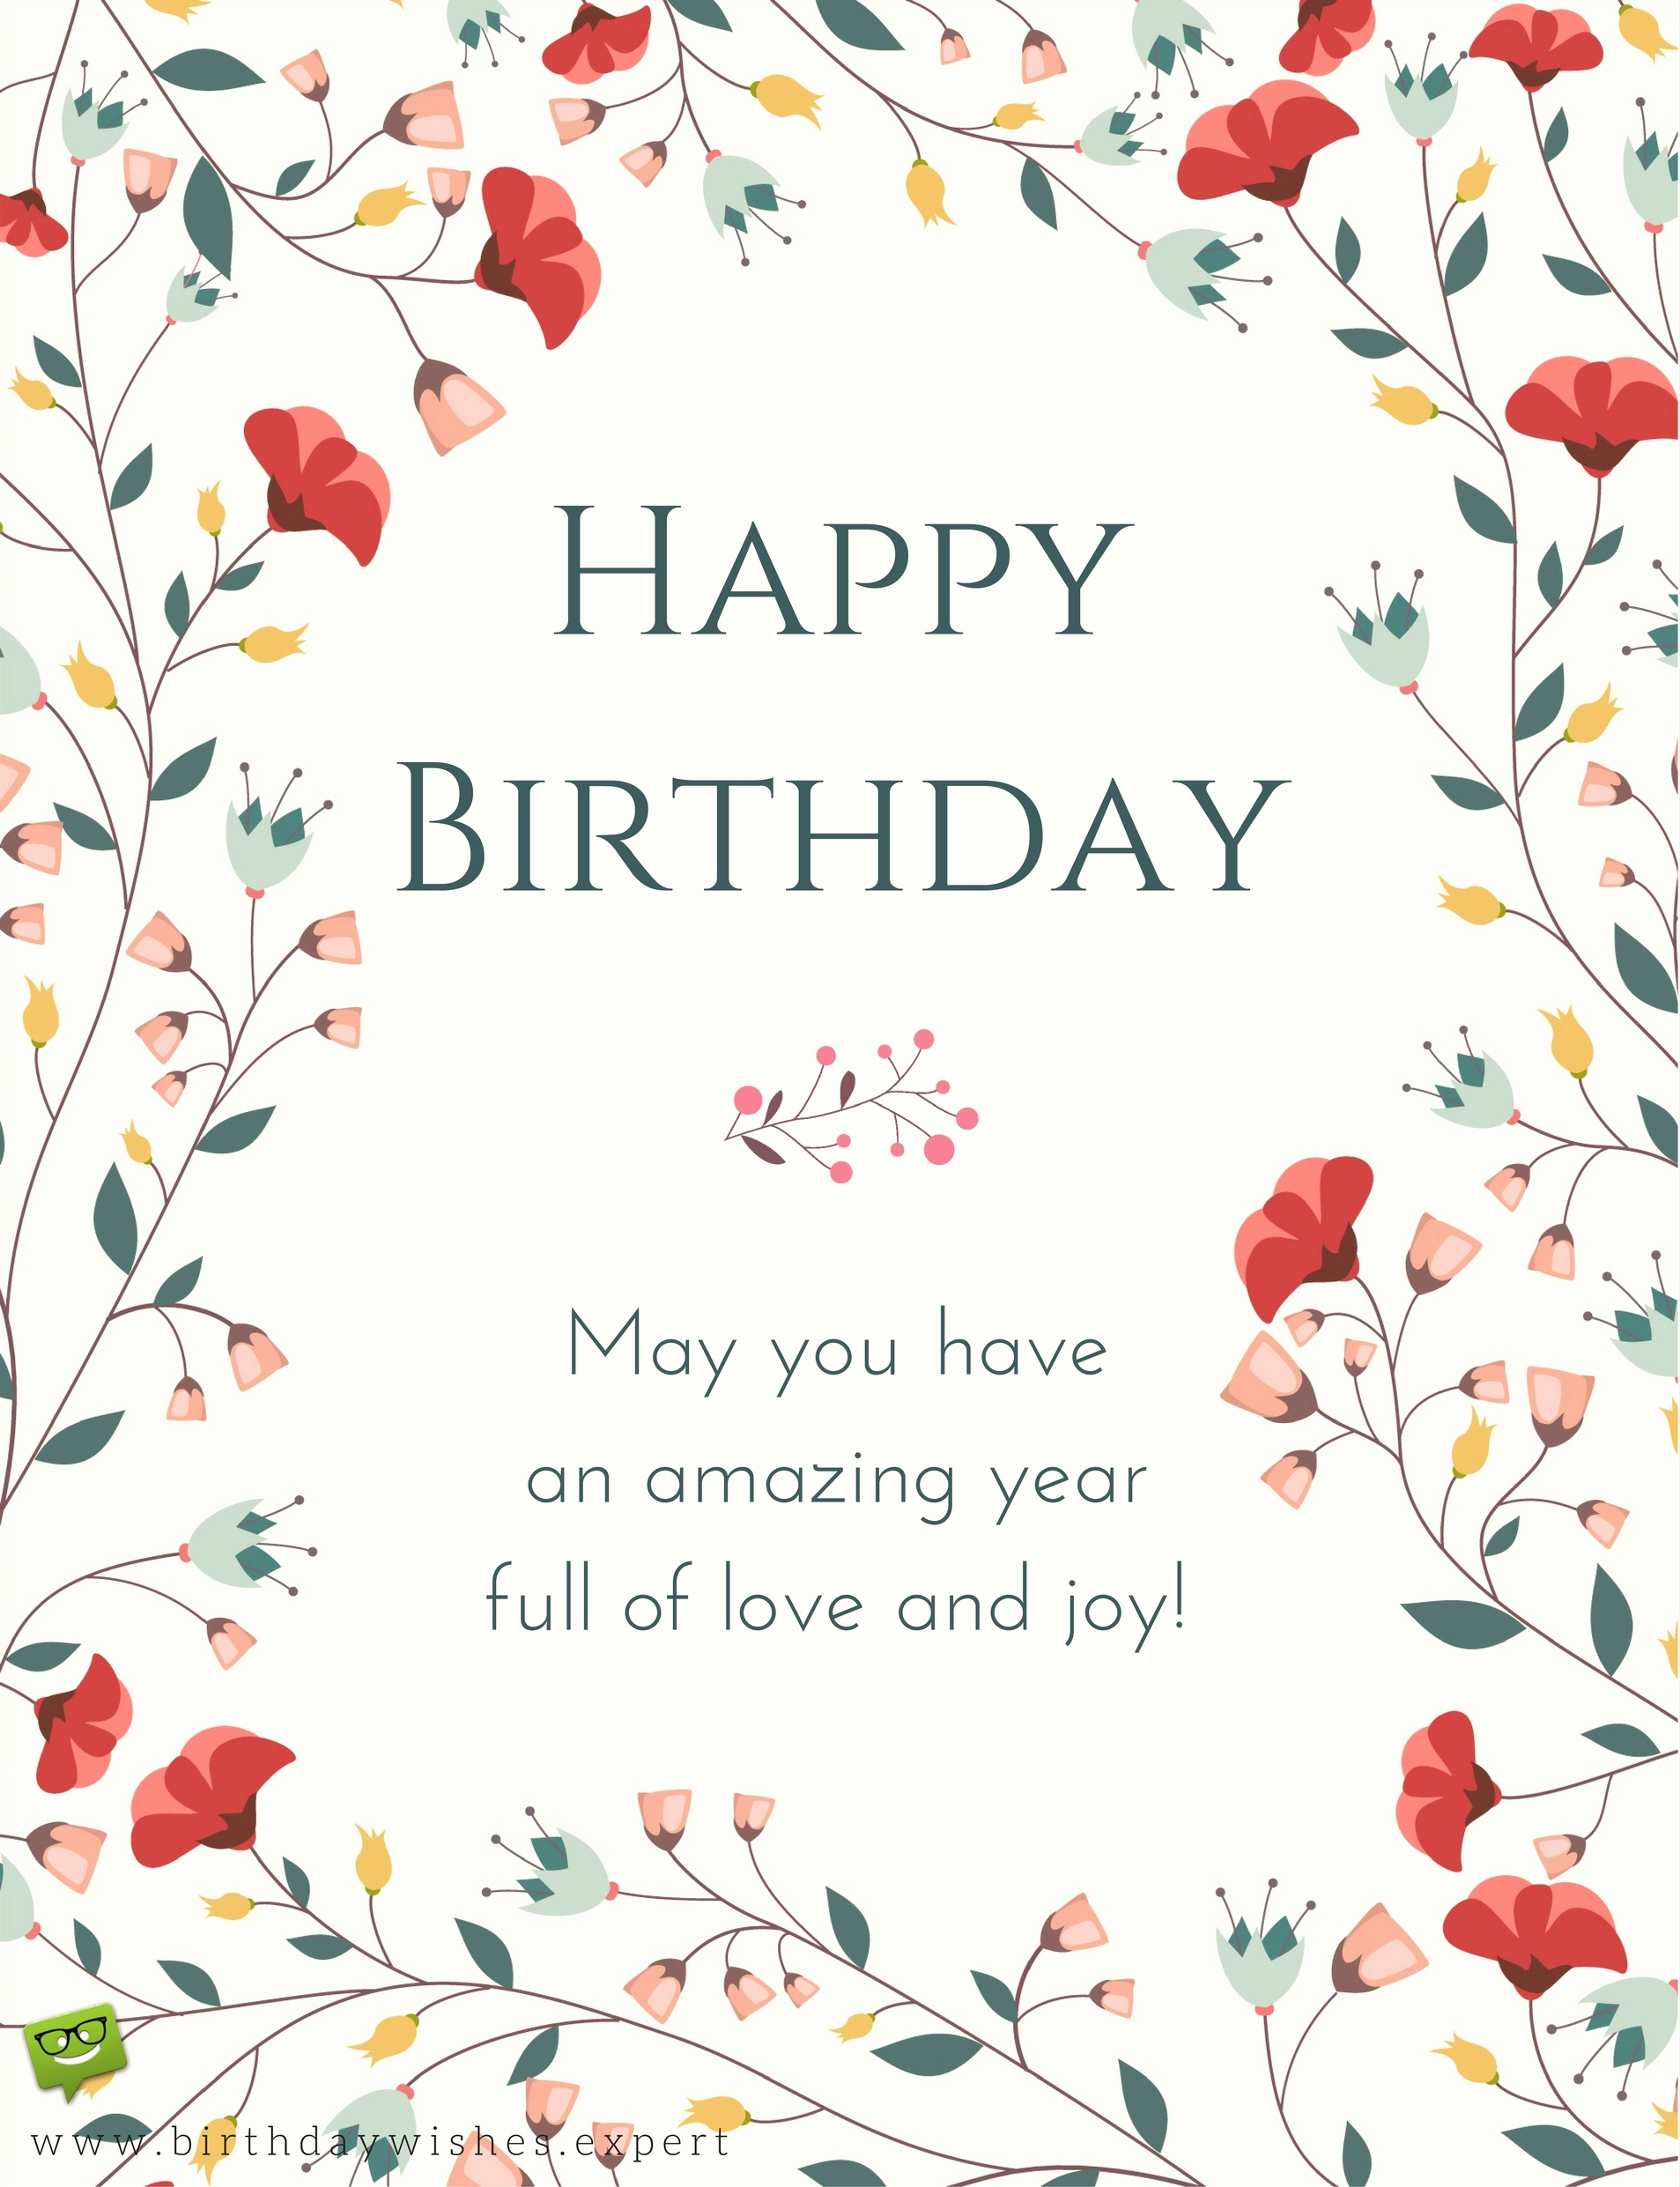 text message birthday cards ; send-birthday-card-by-text-message-awesome-following-protocol-formal-birthday-wishes-of-send-birthday-card-by-text-message